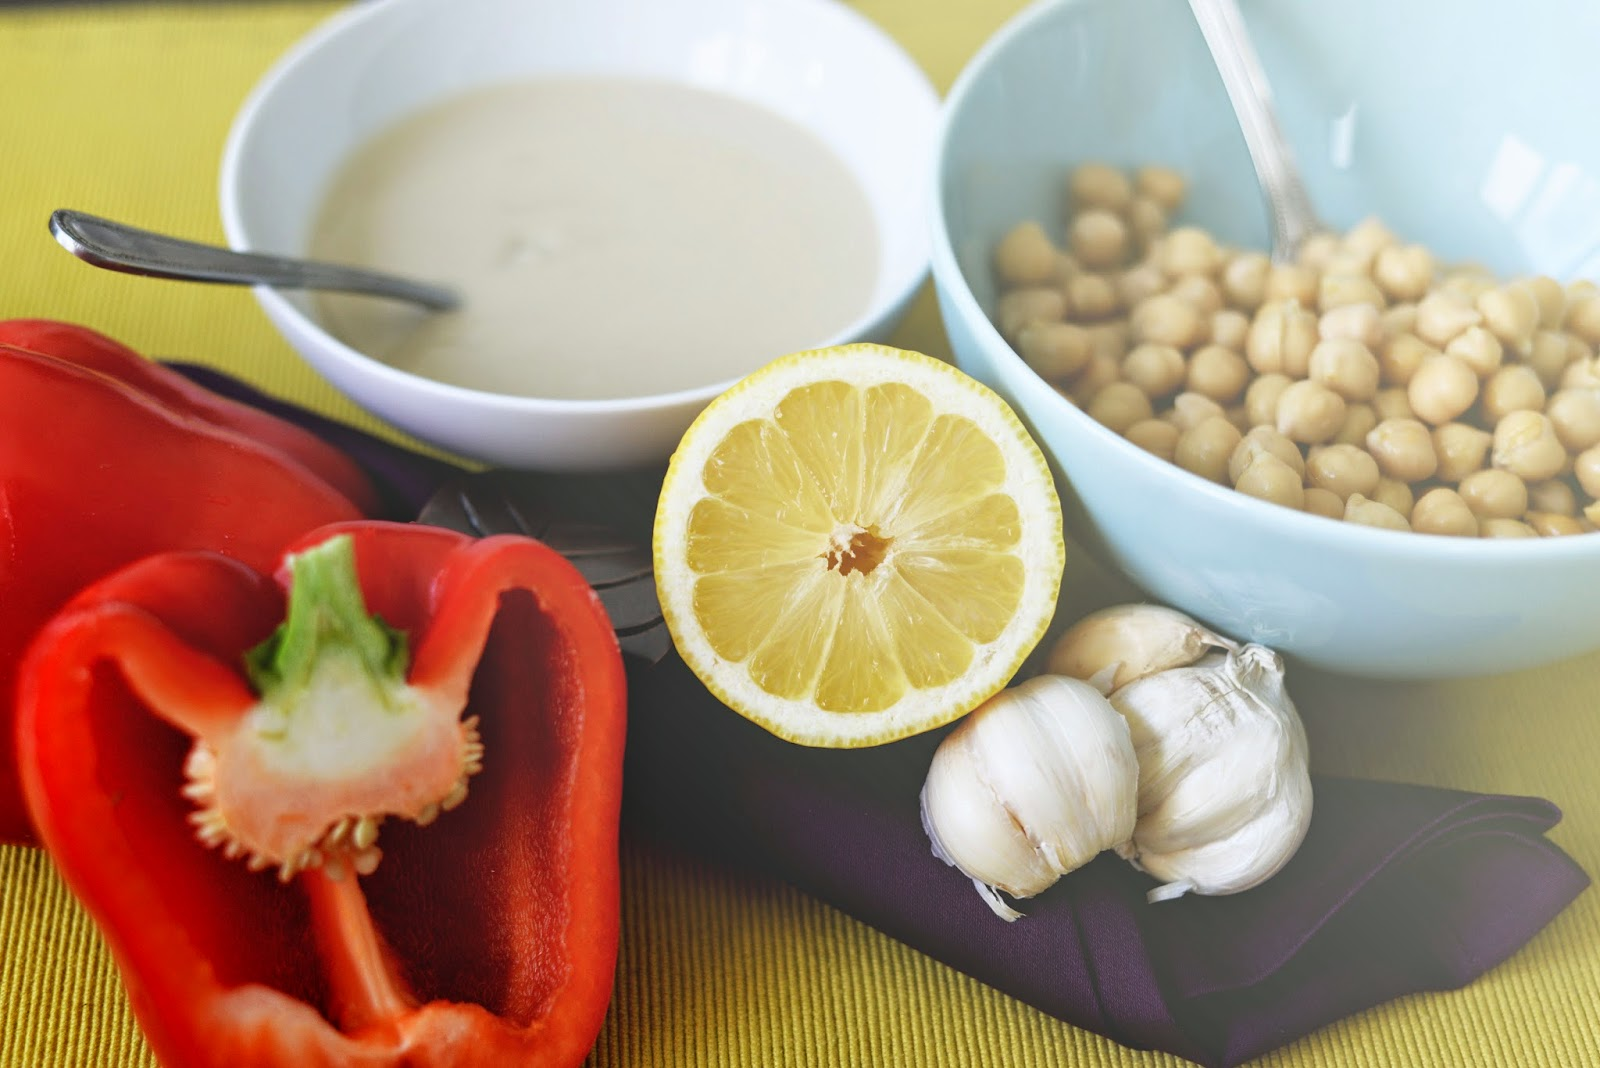 Super simple hummus ingredients